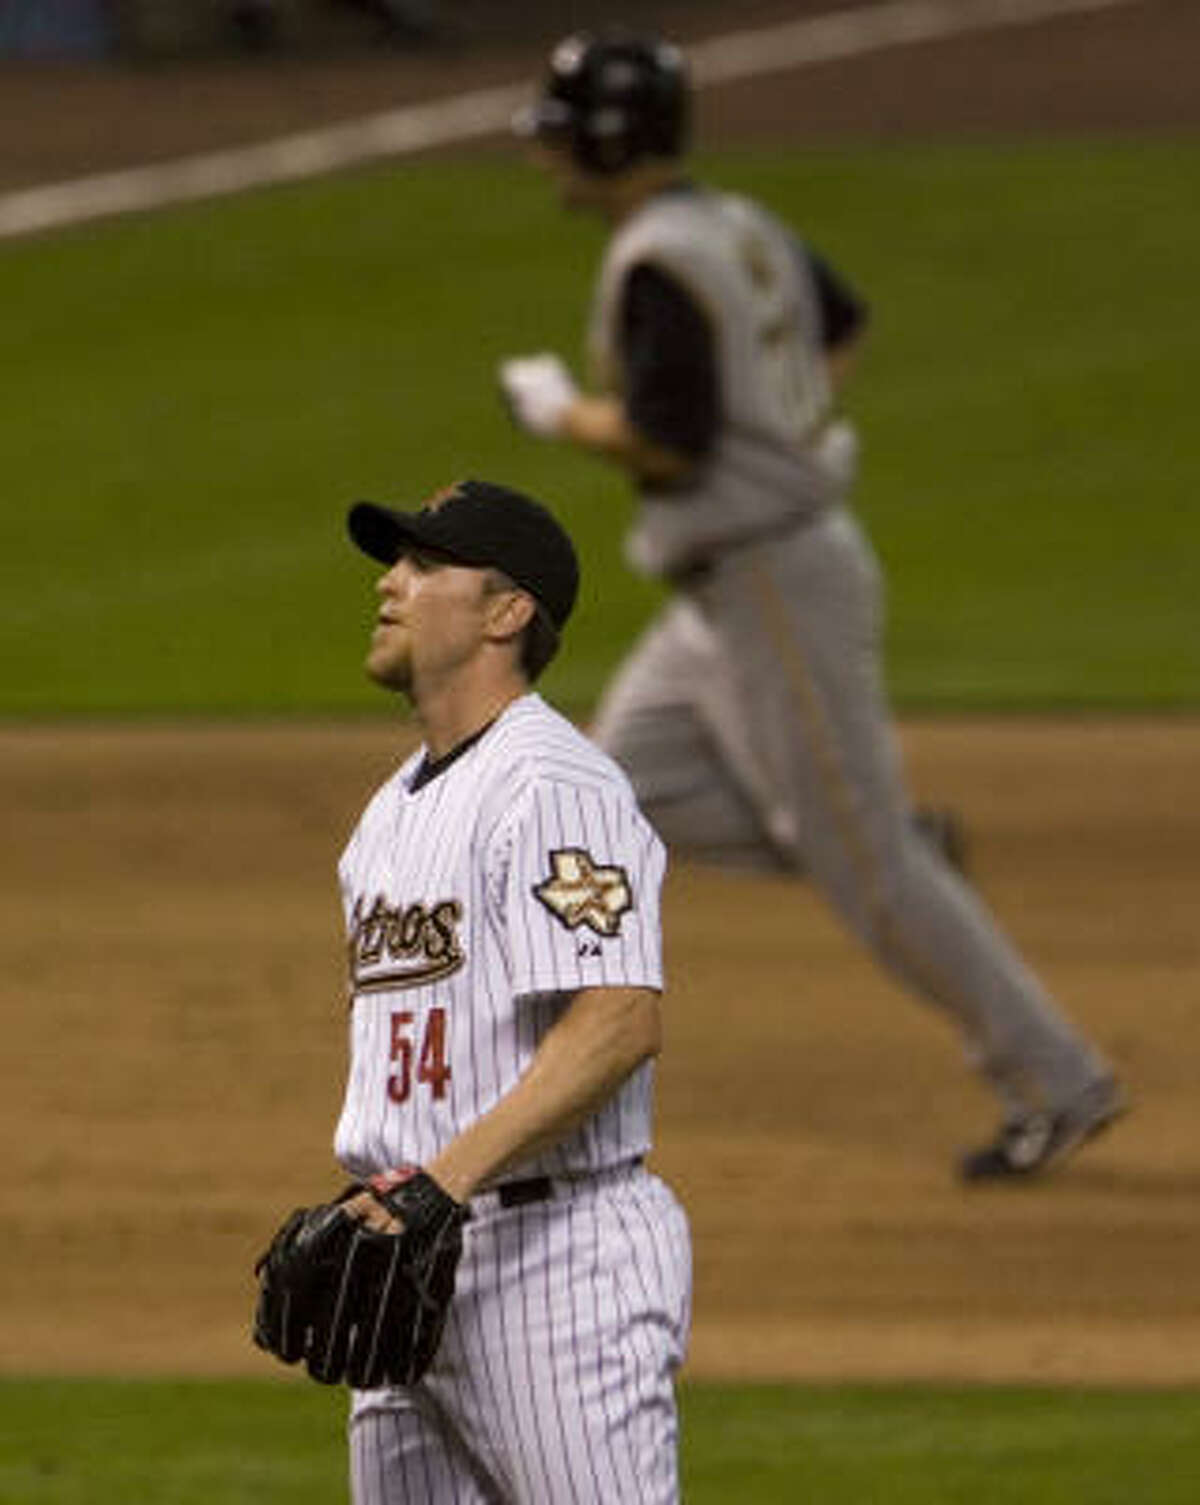 Brad Lidge reacts as Xavier Nady rounds the bases after hitting a homer to tie the game.